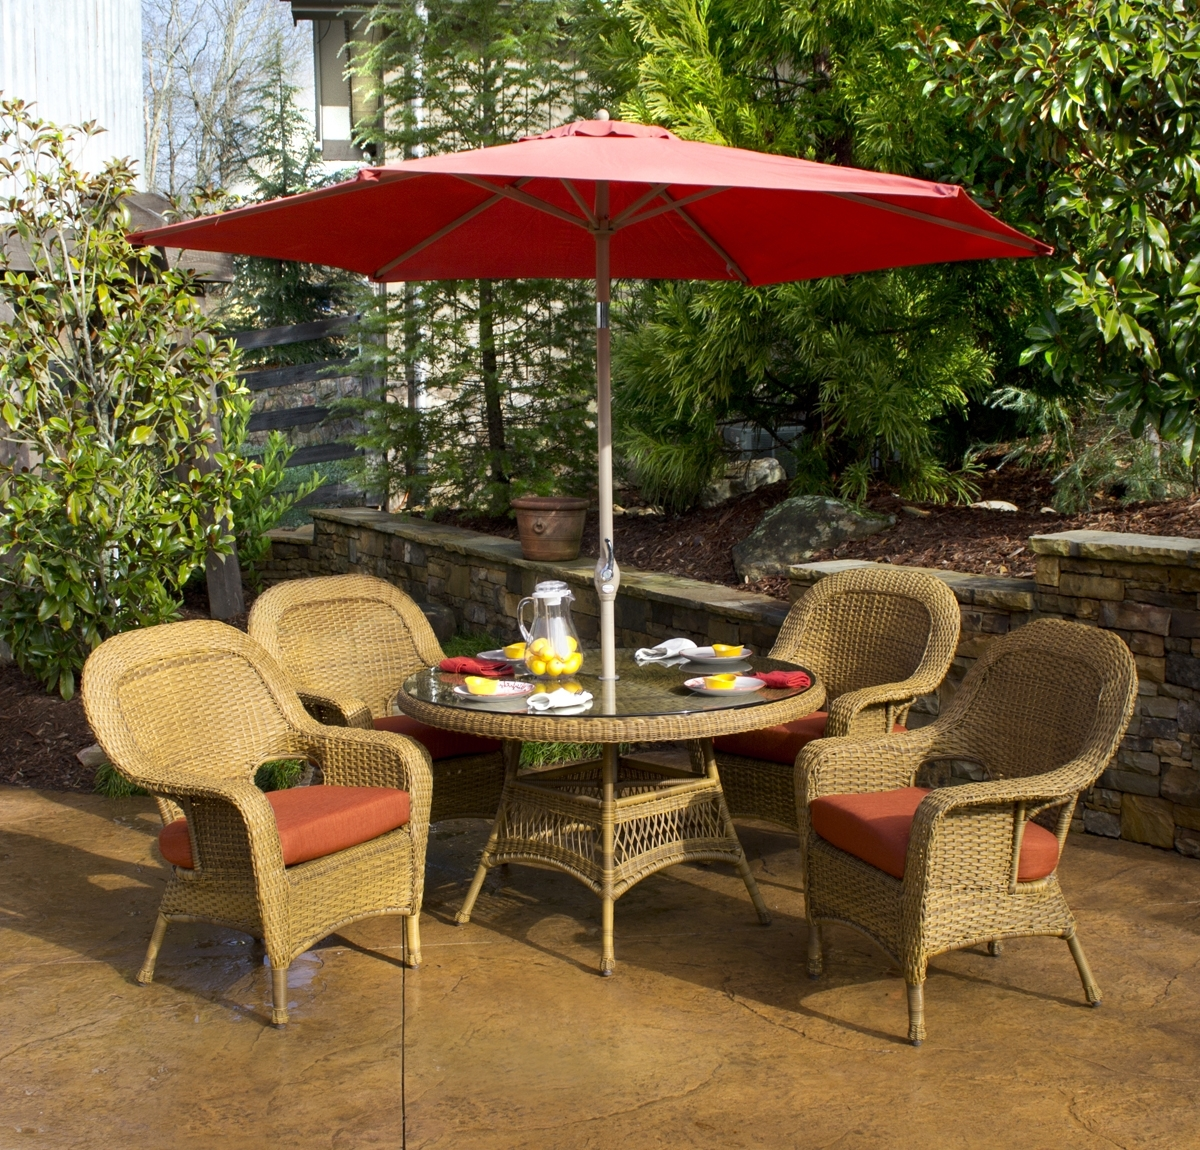 Small Patio Tables With Umbrellas Hole Pertaining To 2019 Patio: Amazing Small Patio Table With Umbrella Outdoor Furniture (View 12 of 20)